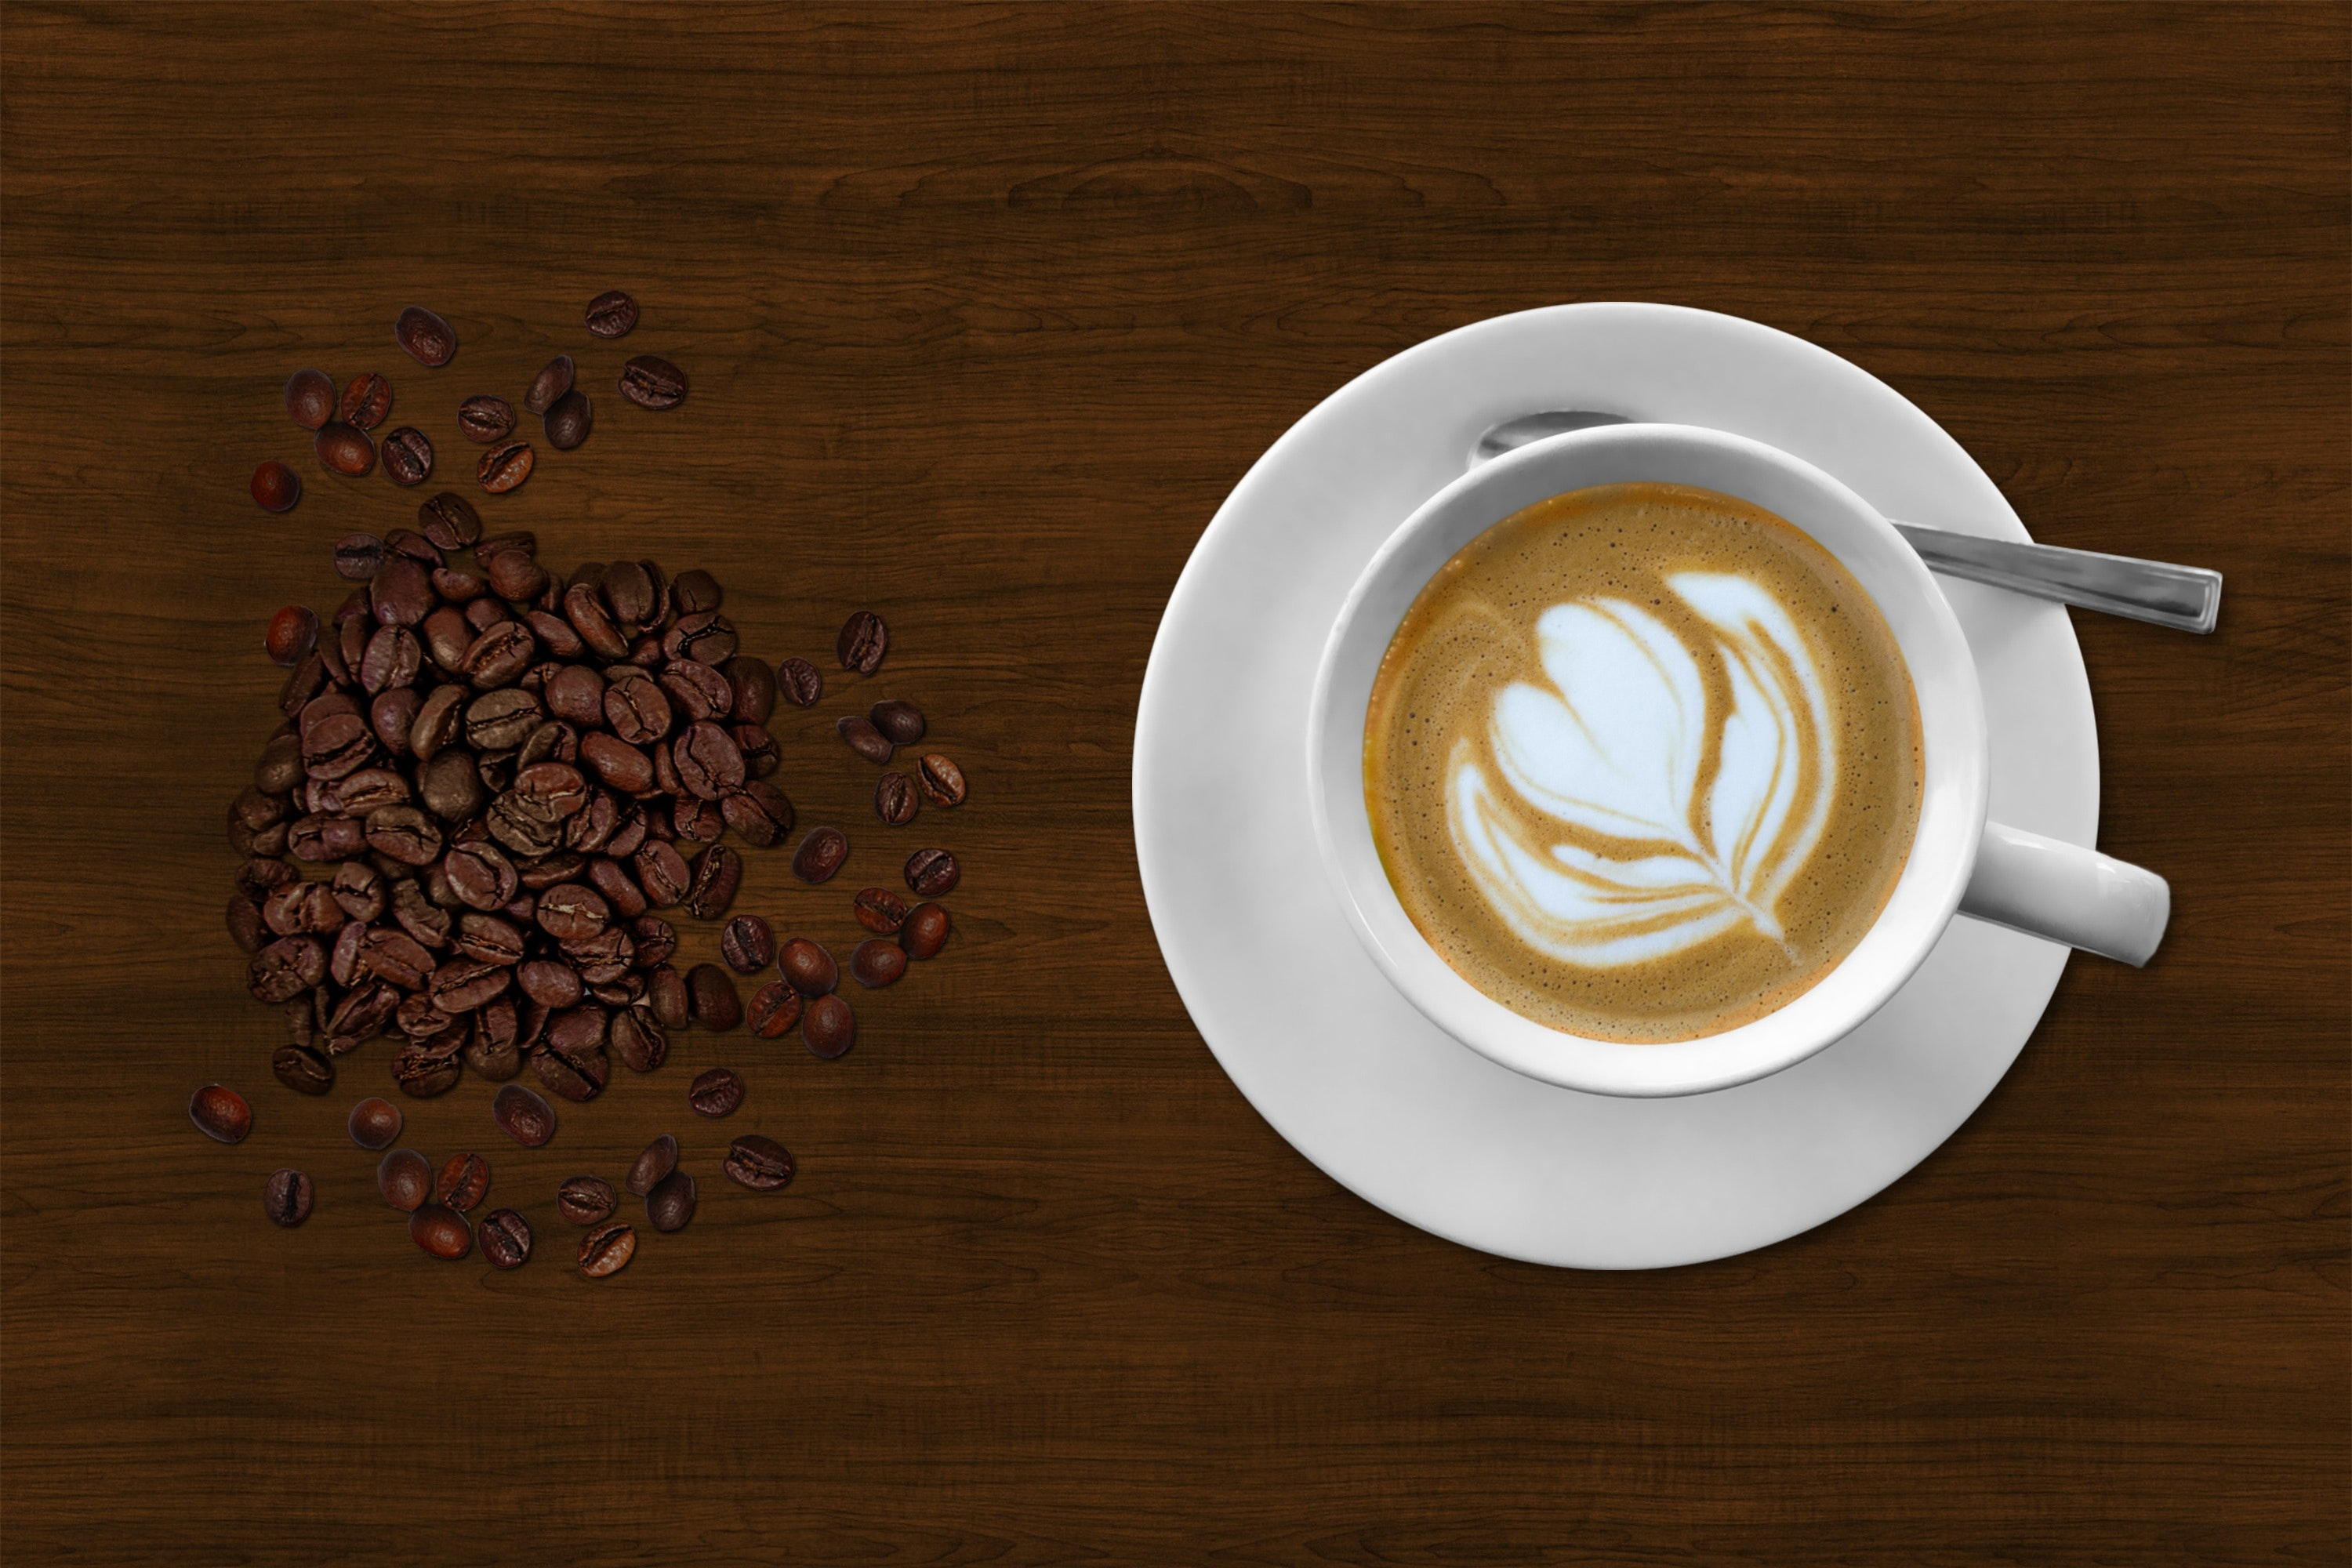 Brown And White Espresso In Coffee Mug Beside Beans